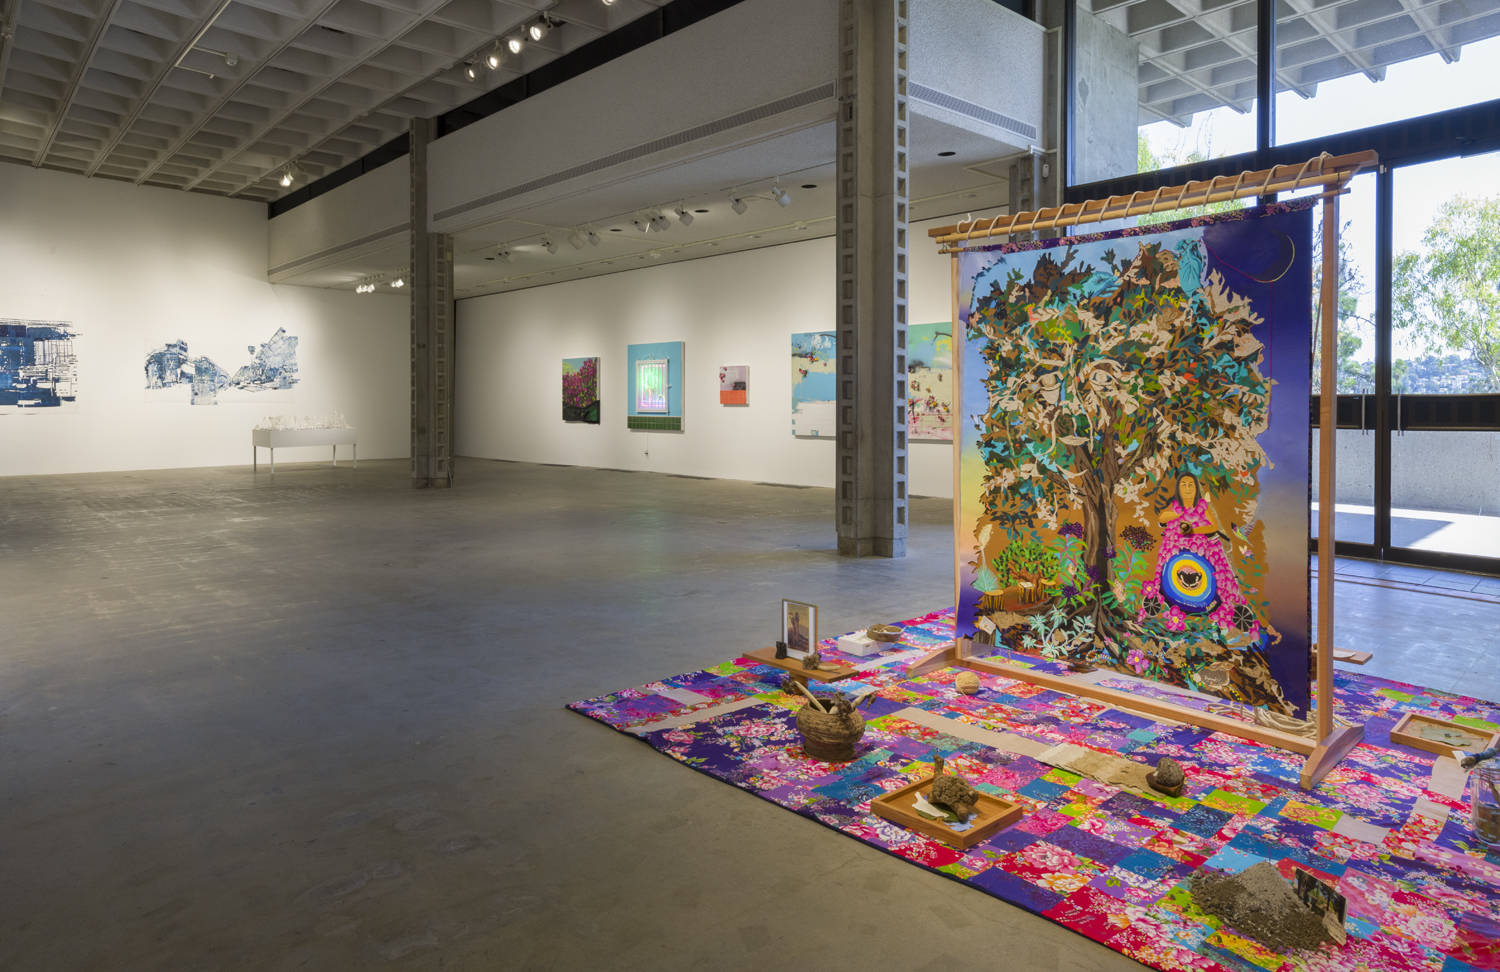 In this art installation, there is one large artwork by the artist iris yirei hu that features a floral textile with pink, purple, blue and yellow colors on the floor. There are also various objects, such as a pile of dirt, a woven basket and a picture frame placed on the textile. Standing in the middle of the textile is a large freestanding tapestry that depicts a woman wearing a bright pink robe and standing next to a tree. To the left of this artwork installation are artworks by the artist Patrick Martinez, including a neon image of a palm tree, a small purple and orange painting, and another painting of bougainvillea. To the left of these artworks is a different artwork installation by the artist Fran Siegel. These artworks include white and blue abstract paperworks hanging on the wall, and a white table with white ceramic, abstract forms sitting on top.